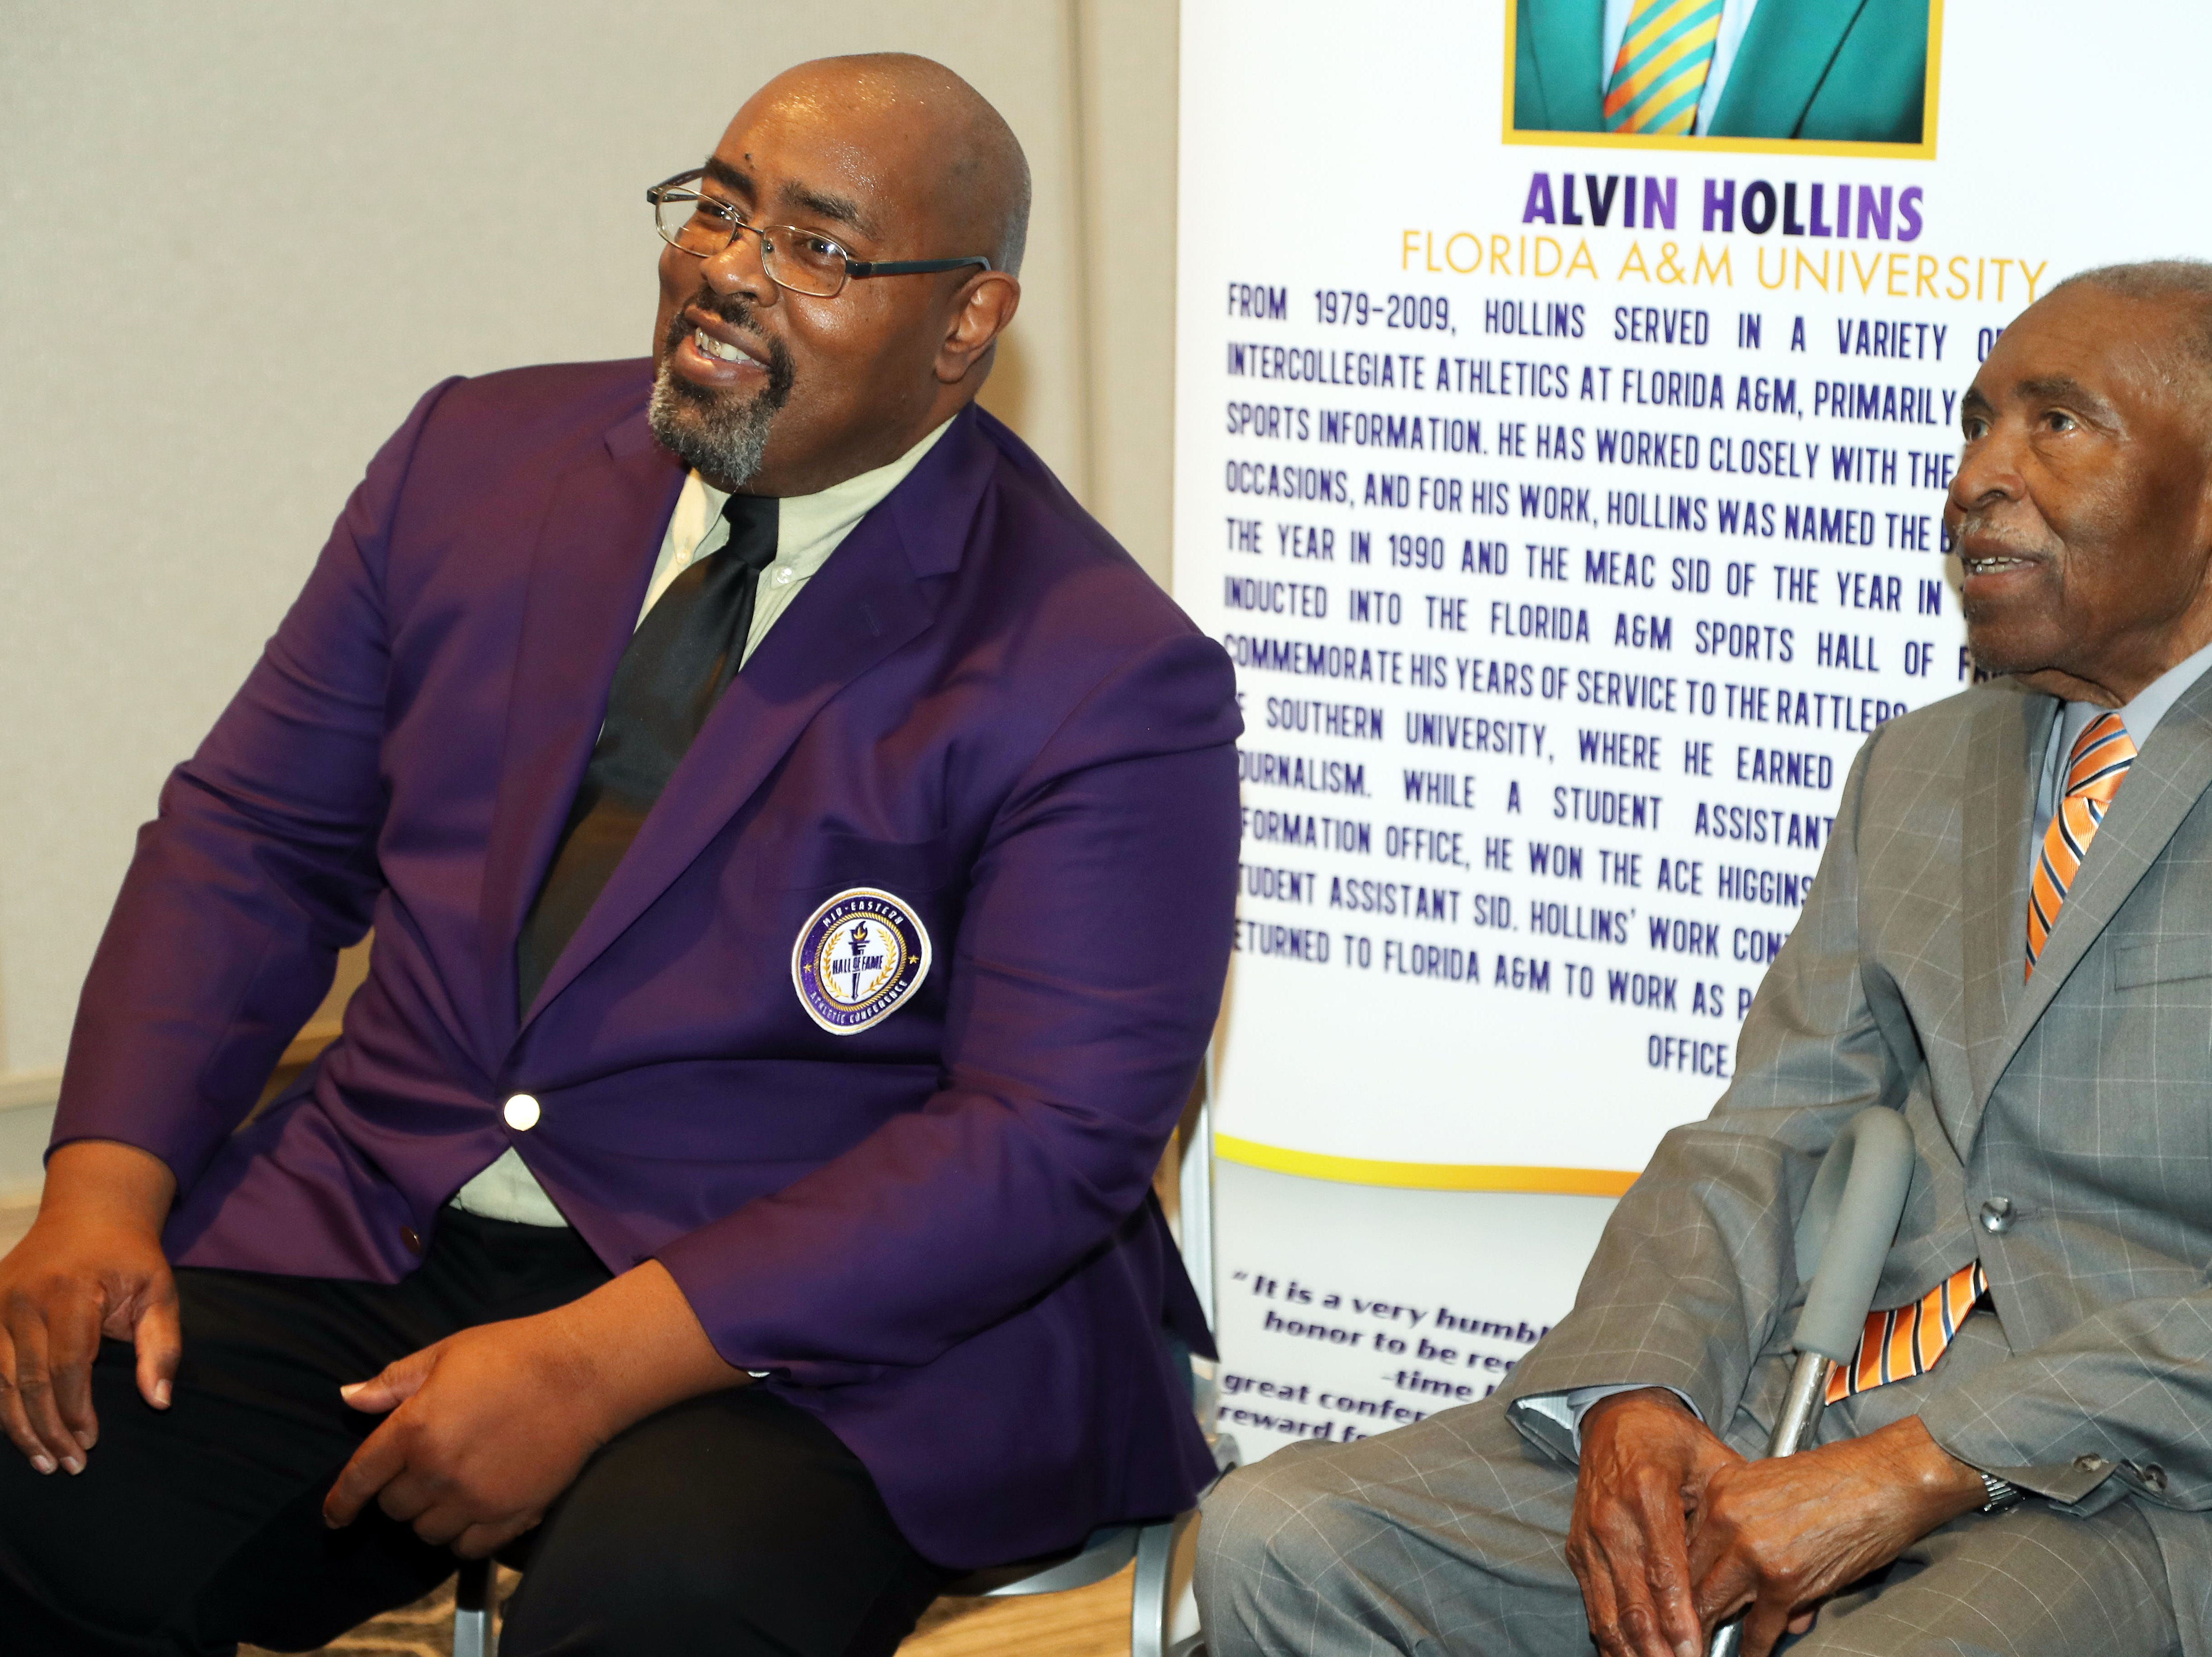 FAMU sports administrator Alvin Hollins, Jr. (left) shared his MEAC Hall of Fame moment with his father, Alvin, Sr. The event was held on Wednesday, March 14, 2019 at the Sheraton Waterside Hotel in Norfolk, Virginia.